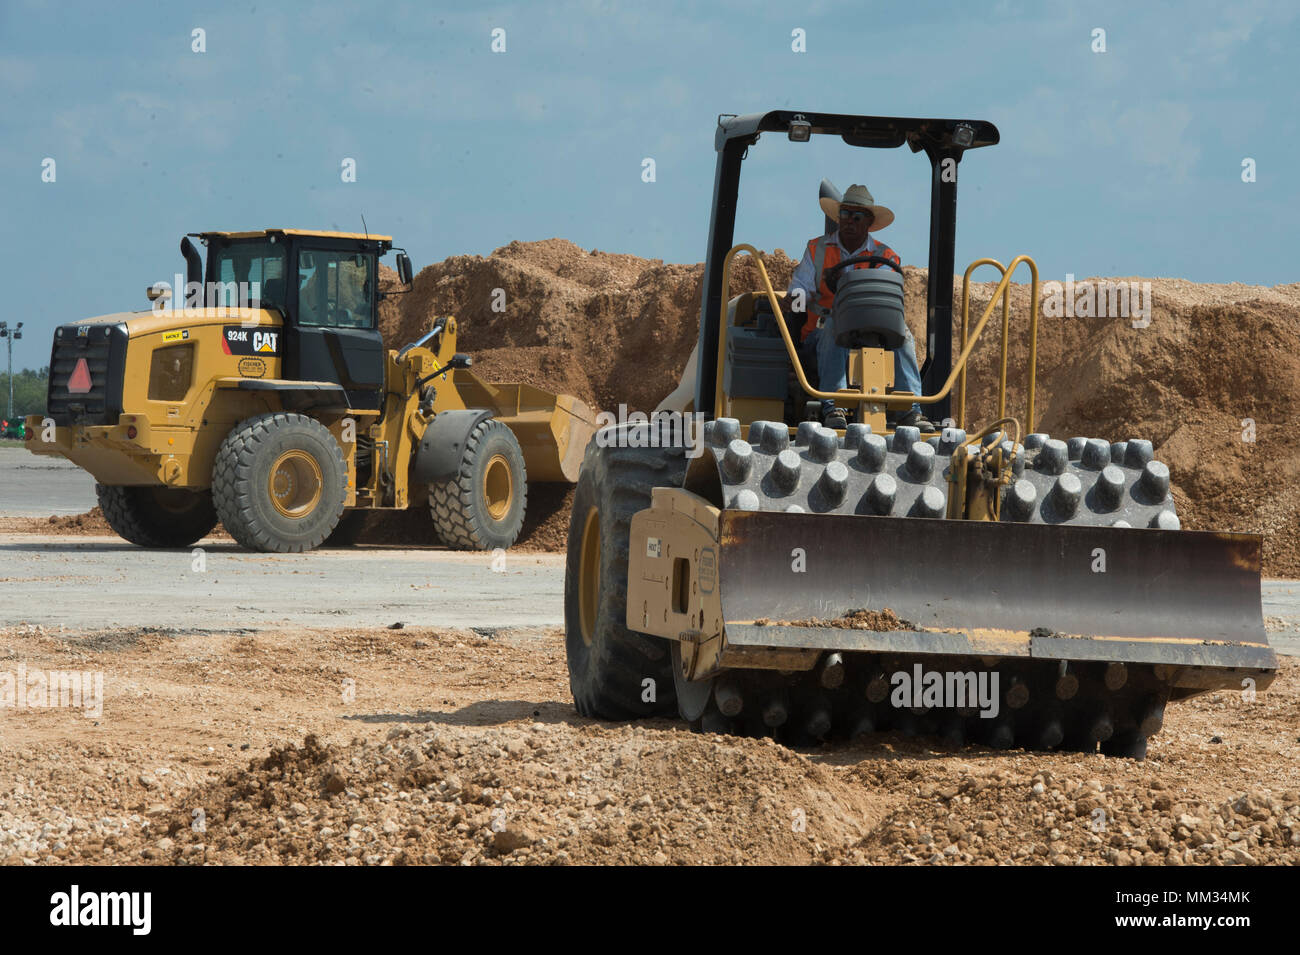 Fischer Construction Company, contractors,  use a vibratory soil compactor  and a wheel loader to create a new entry point at JBSA Randolph auxiliary airfield, Seguin, Texas, 2 September, 2017.  The New Braunfels, Texas  company is helping increase the storage area for Hurricane Harvey relief trailers supporting disaster-relief efforts for the category-4 hurricane with 130 mph winds as it made landfall, August 25, 2017.  Days after the hurricane reached the Texas, more than 50 inches of rain flooded the coastal region. (U.S. Air Force Photo by Tech. Sgt. Chad Chisholm/Released) Stock Photo